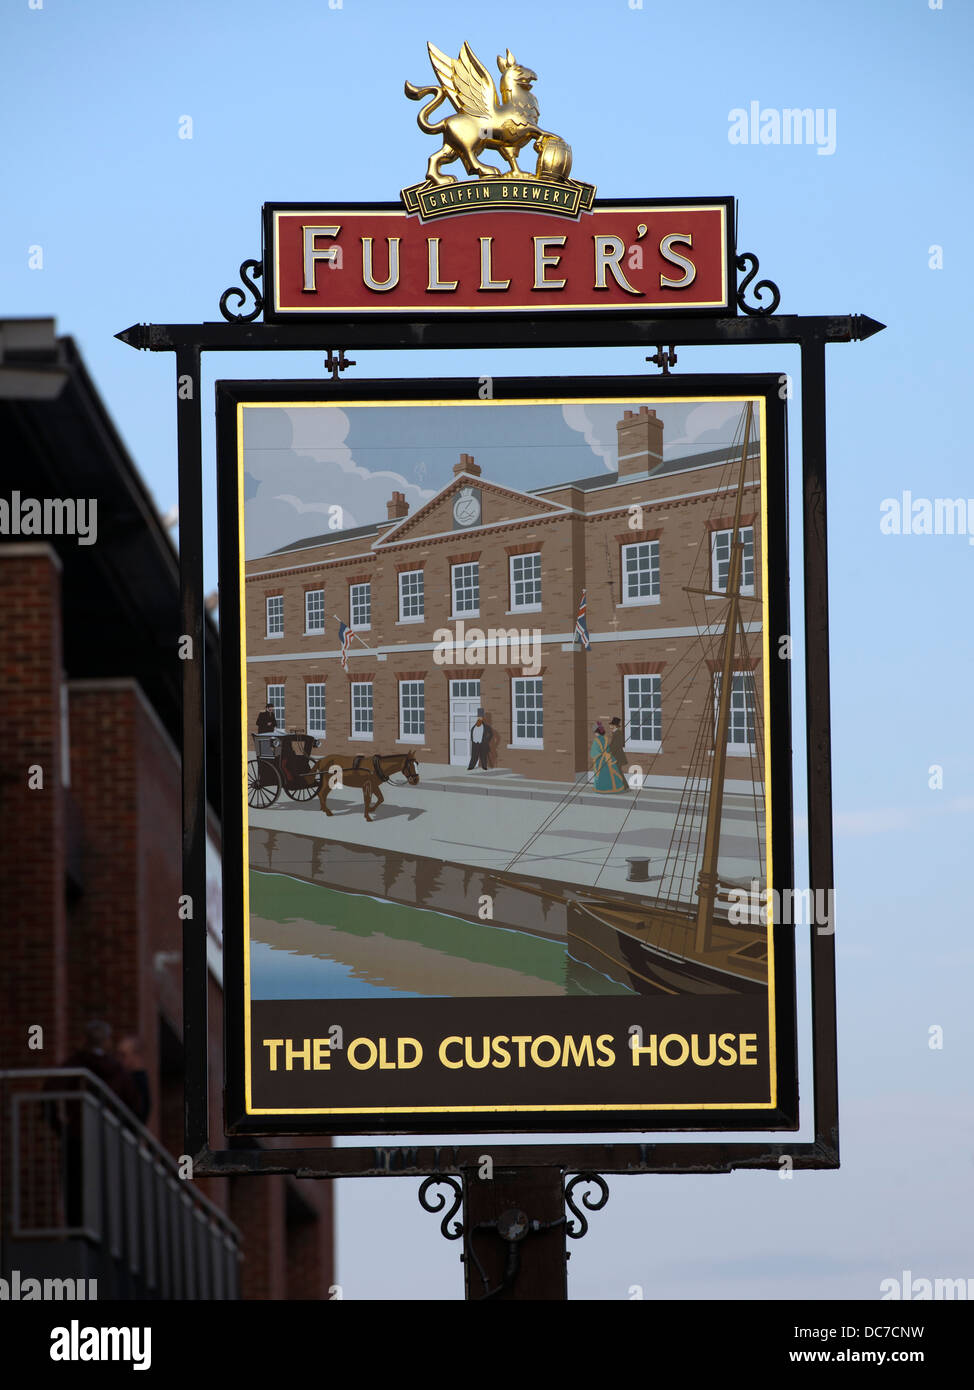 Fuller's Pub Sign for 'The Old Customs House' Public House, Portsmouth, Hampshire,UK. - Stock Image